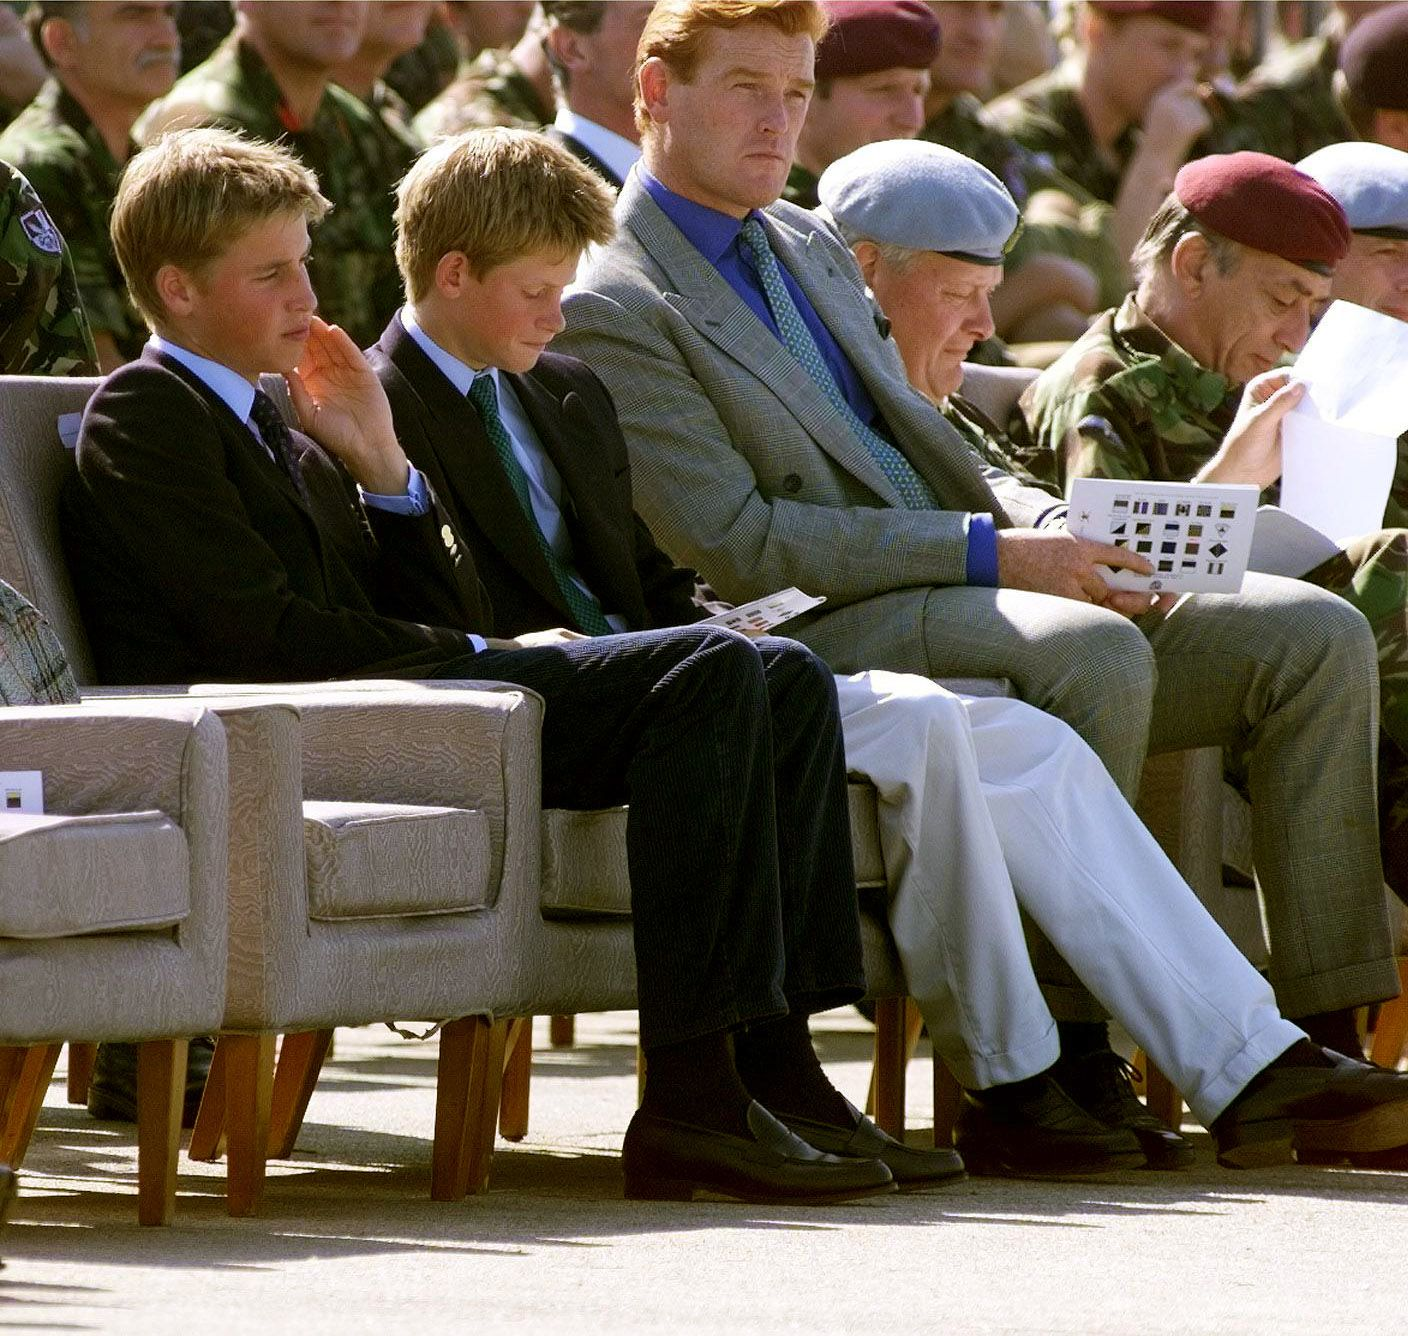 Prince Harry and Prince William with Mark Dyer1999 British Prince Charles attending air assault display at Wattisham RAF Base airbase military airforce in Suffolk